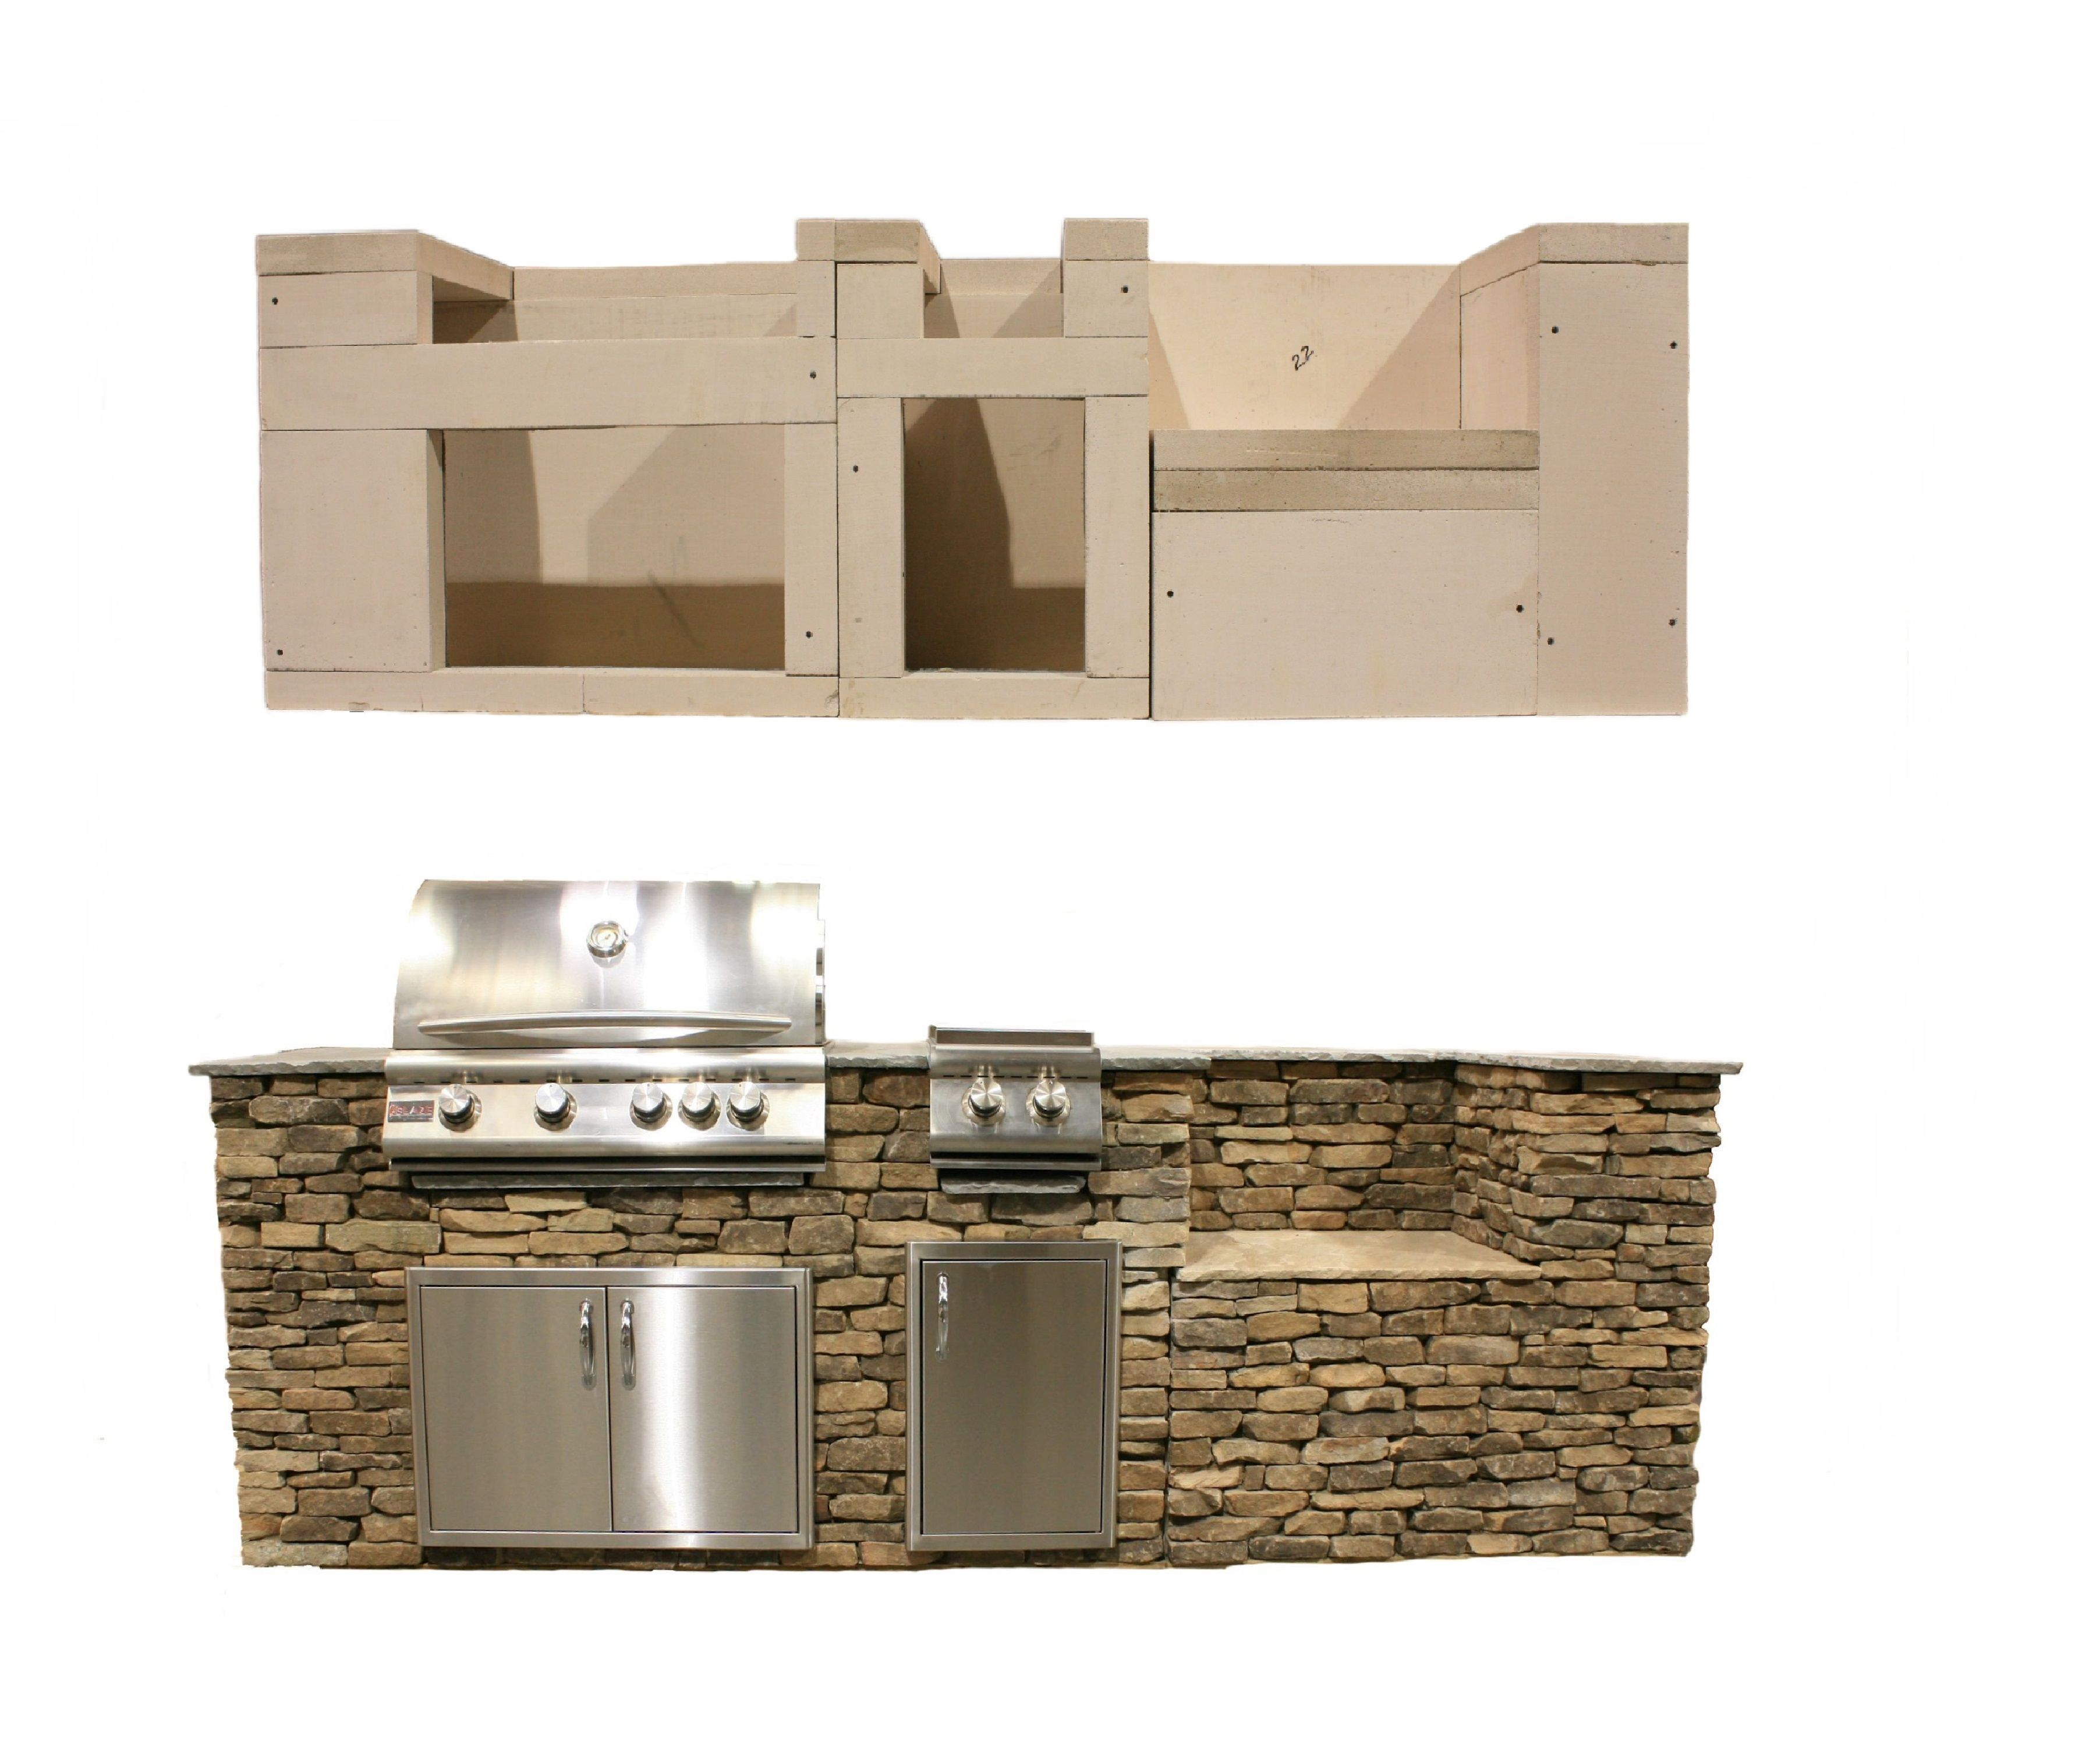 Daco Stone Diy Outdoor Kitchen Kits Easy And Affordable Dacostone Com Lightweight Pieces Easy Stone Veneer Outdoor Fireplace Kits Diy Outdoor Kitchen